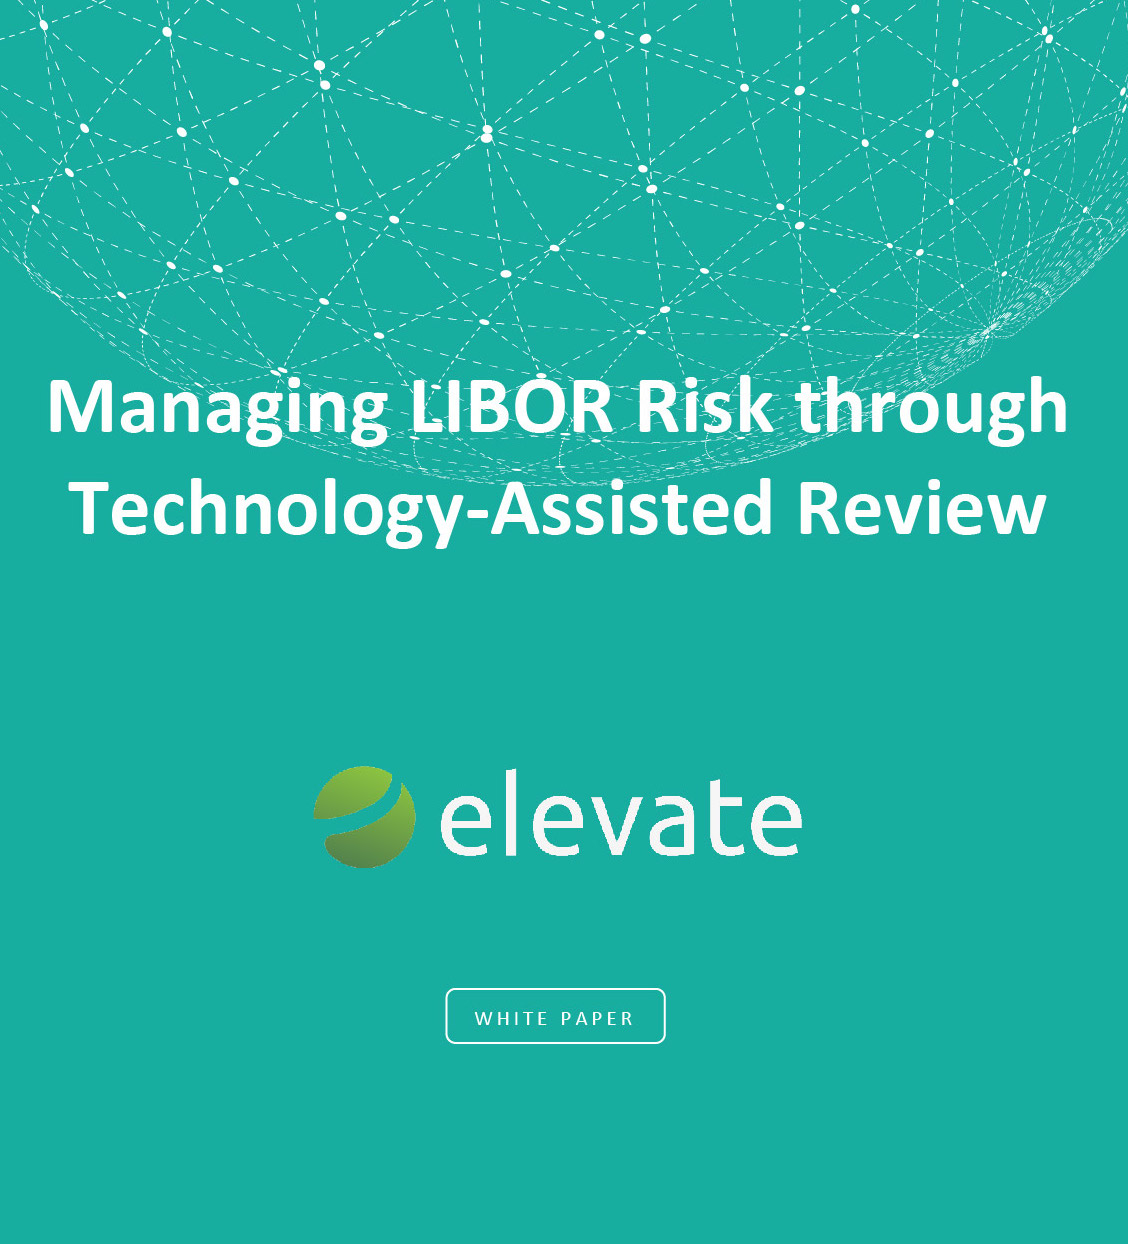 Managing LIBOR Risk through Technology Assisted Review